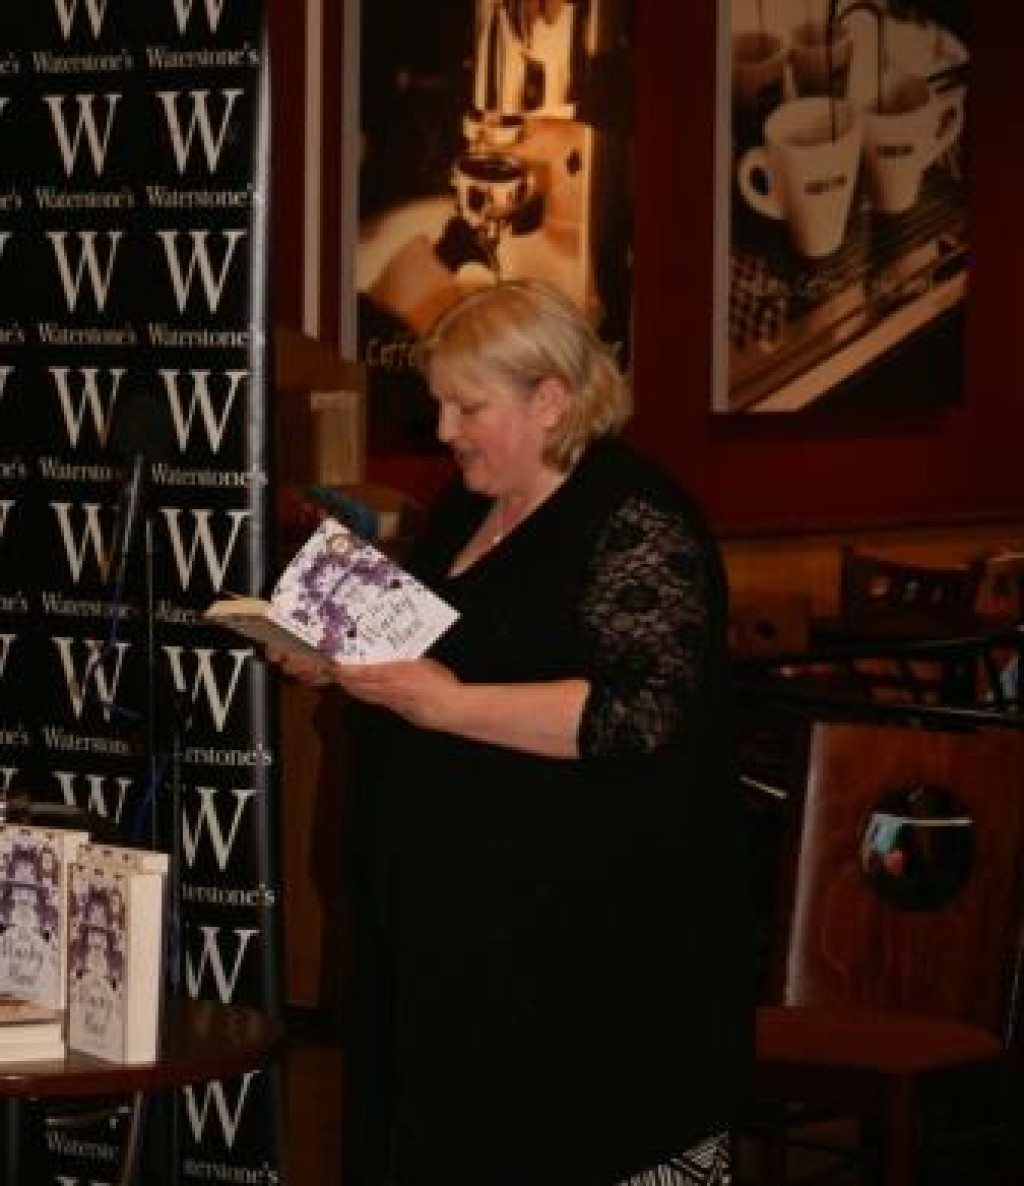 MAY: LAUNCH OF THE WACKY MAN BY LYN G. FARRELL AT WATERSTONES